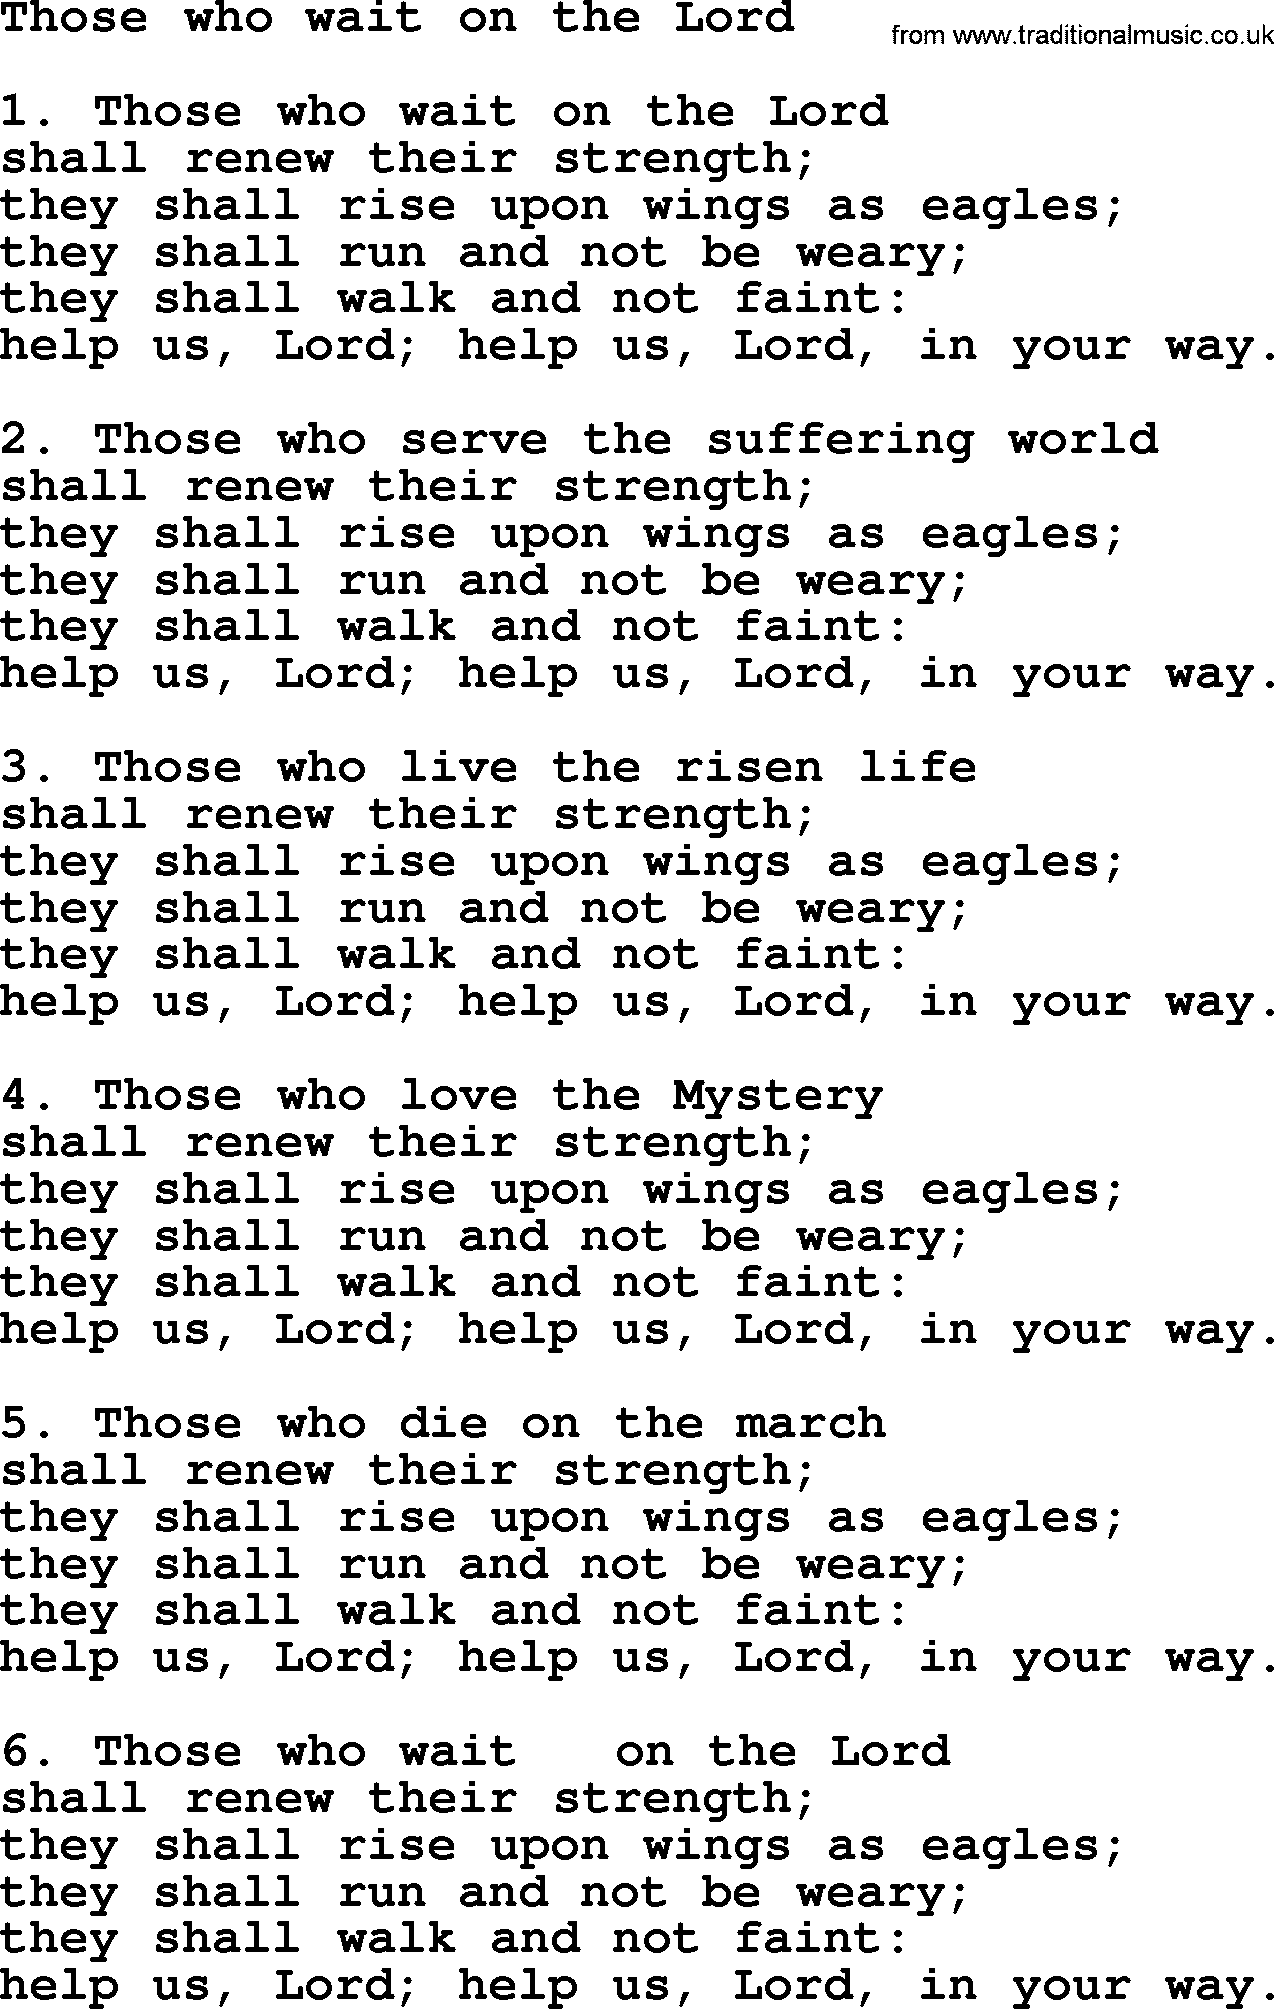 But they that wait upon the lord lyrics